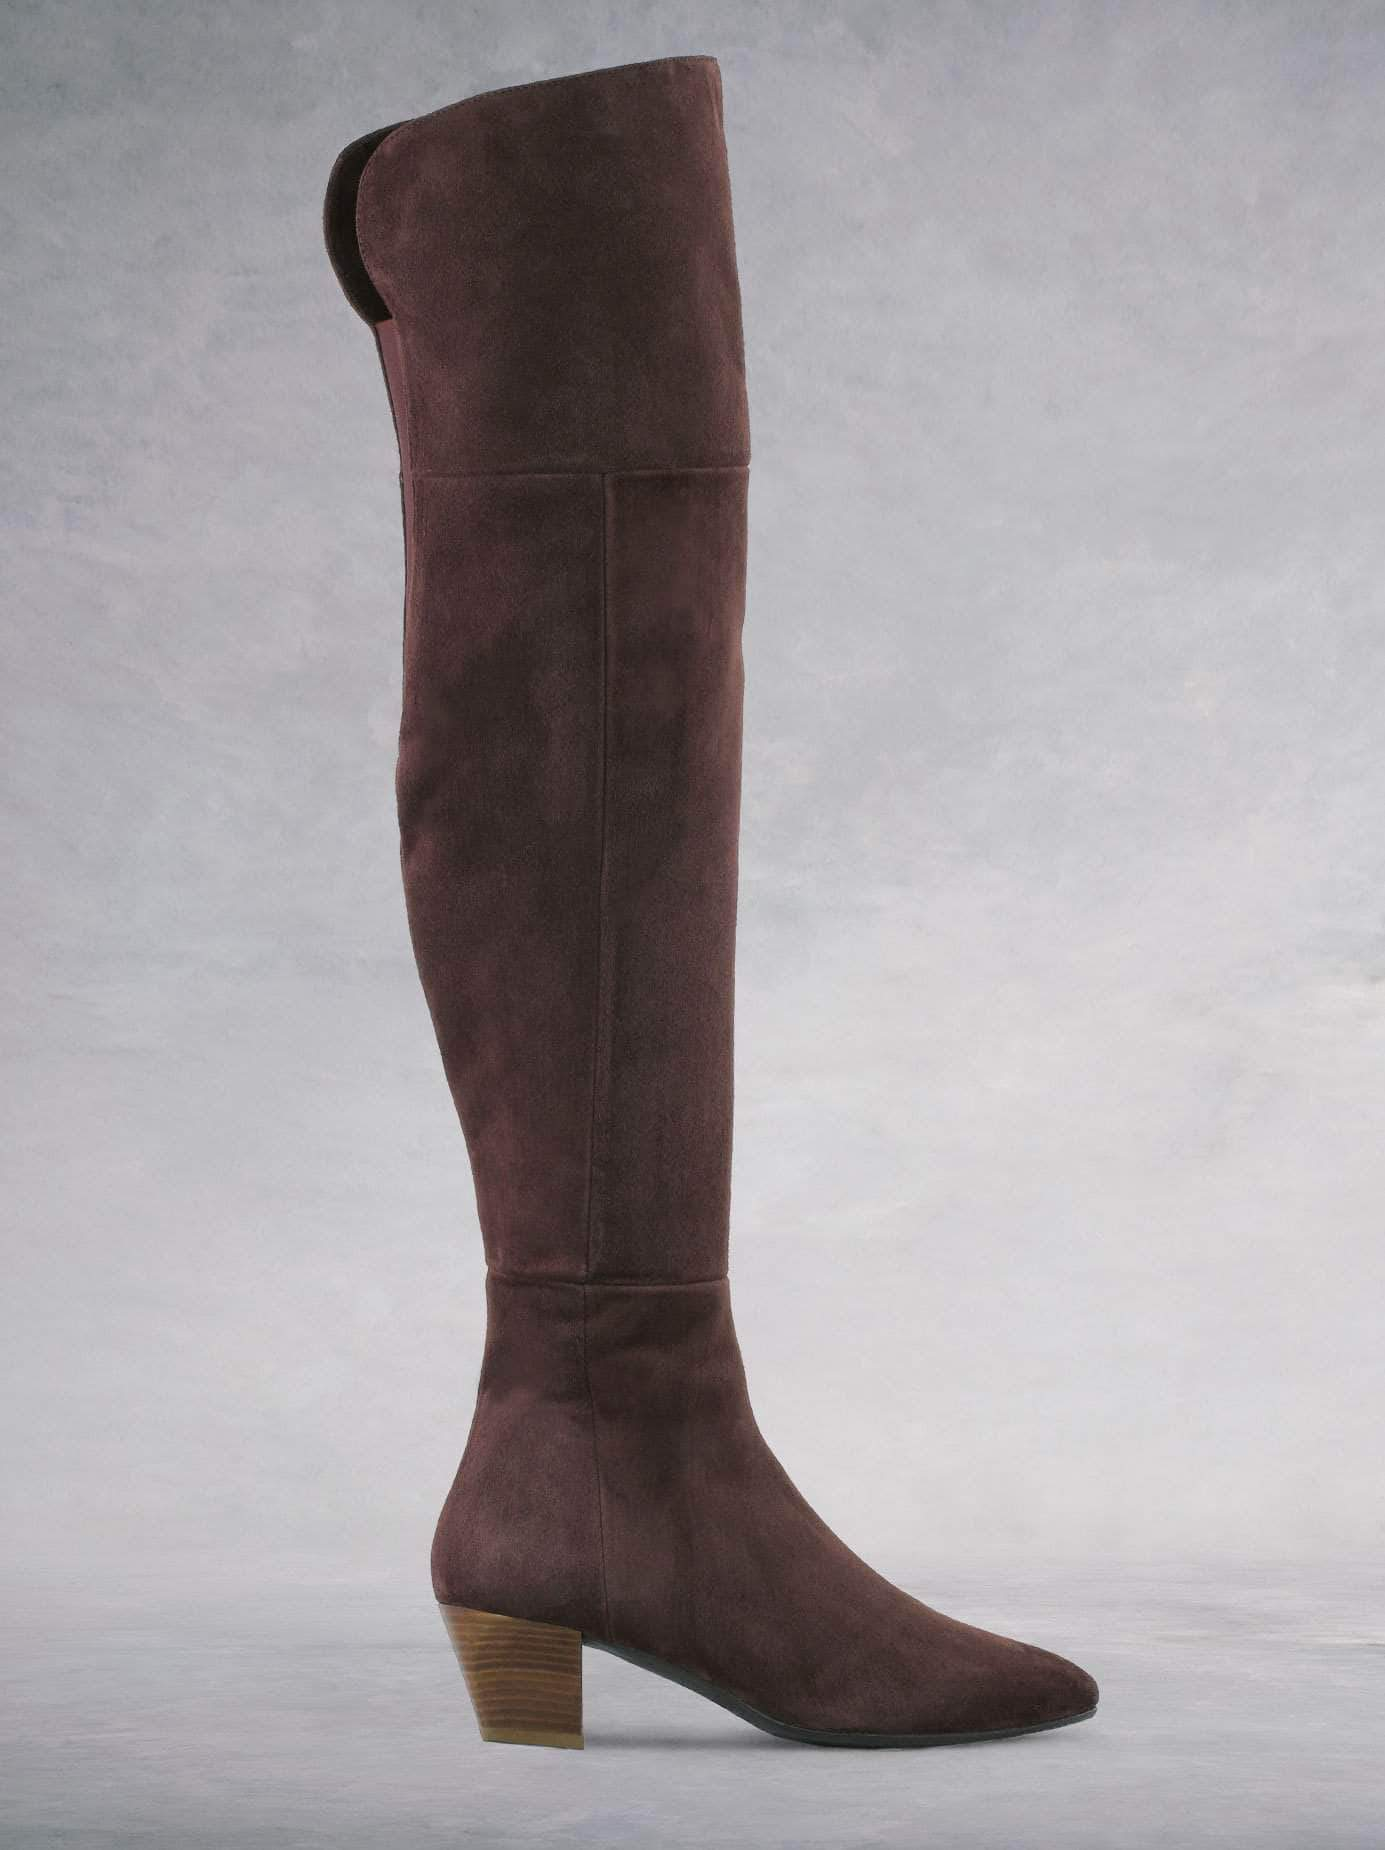 Curve Fig Brown Suede - Over-the-knee suede boots with low heel.